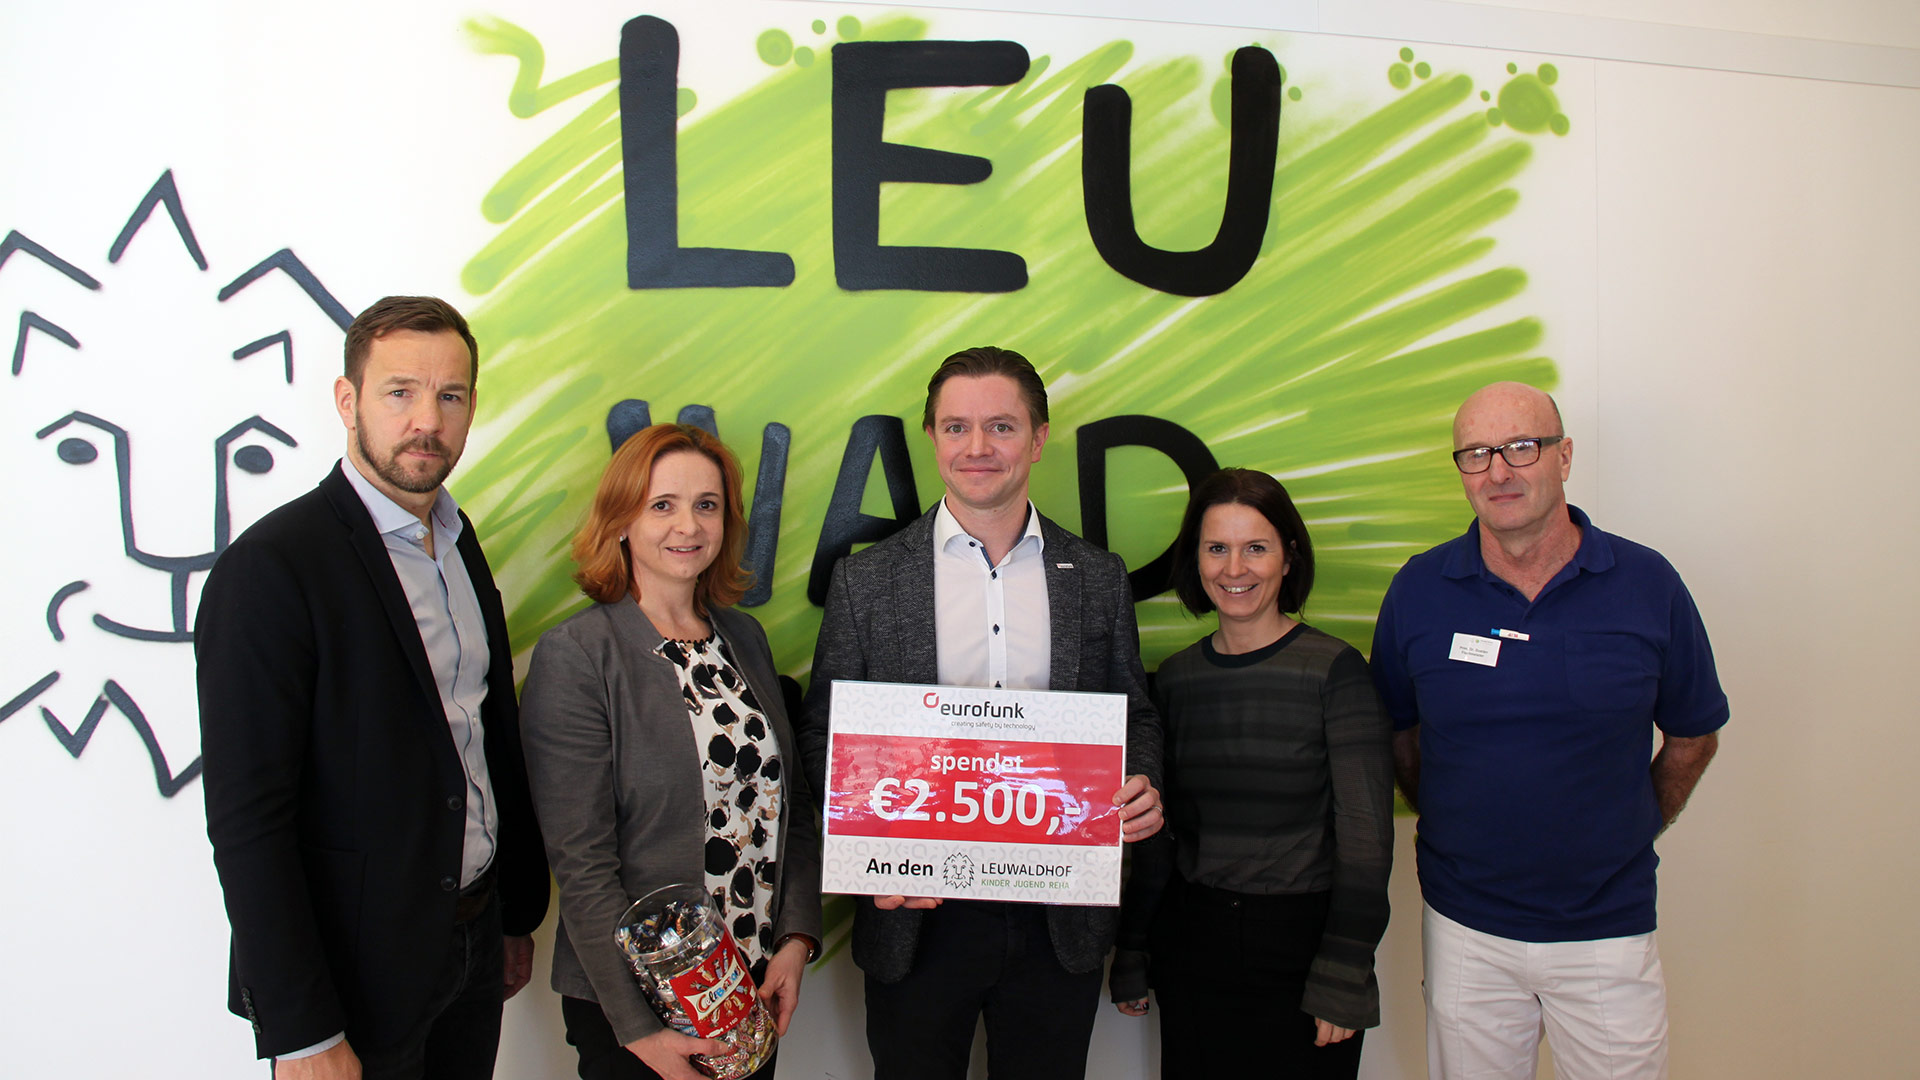 eurofunk donates €2.500,- to the Leuwaldhof Children and Youth Rehabilitation Center